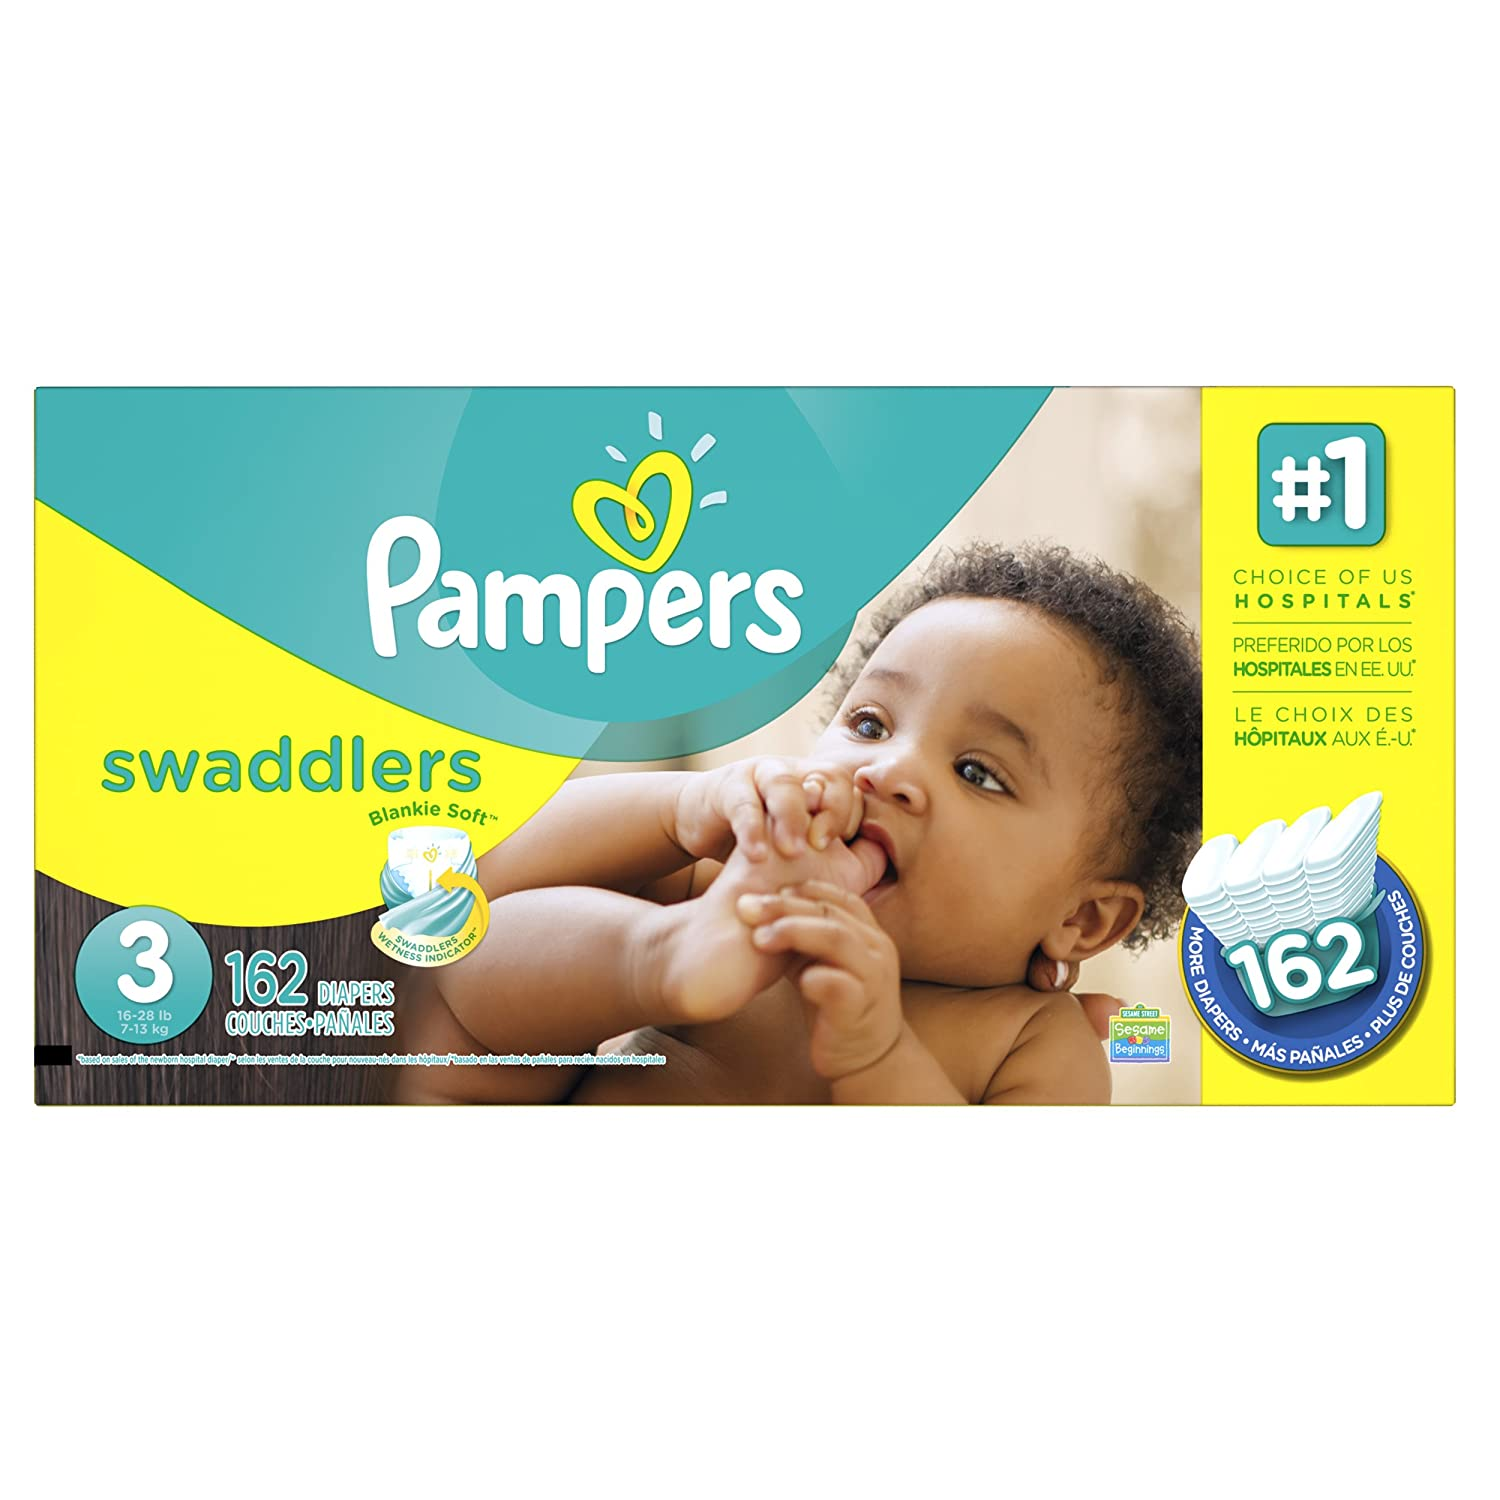 Pampers Swaddlers Diapers Size 3 Economy Pack Plus, 162 Count (Packaging May Vary) by Pampers   B00DFFT76U